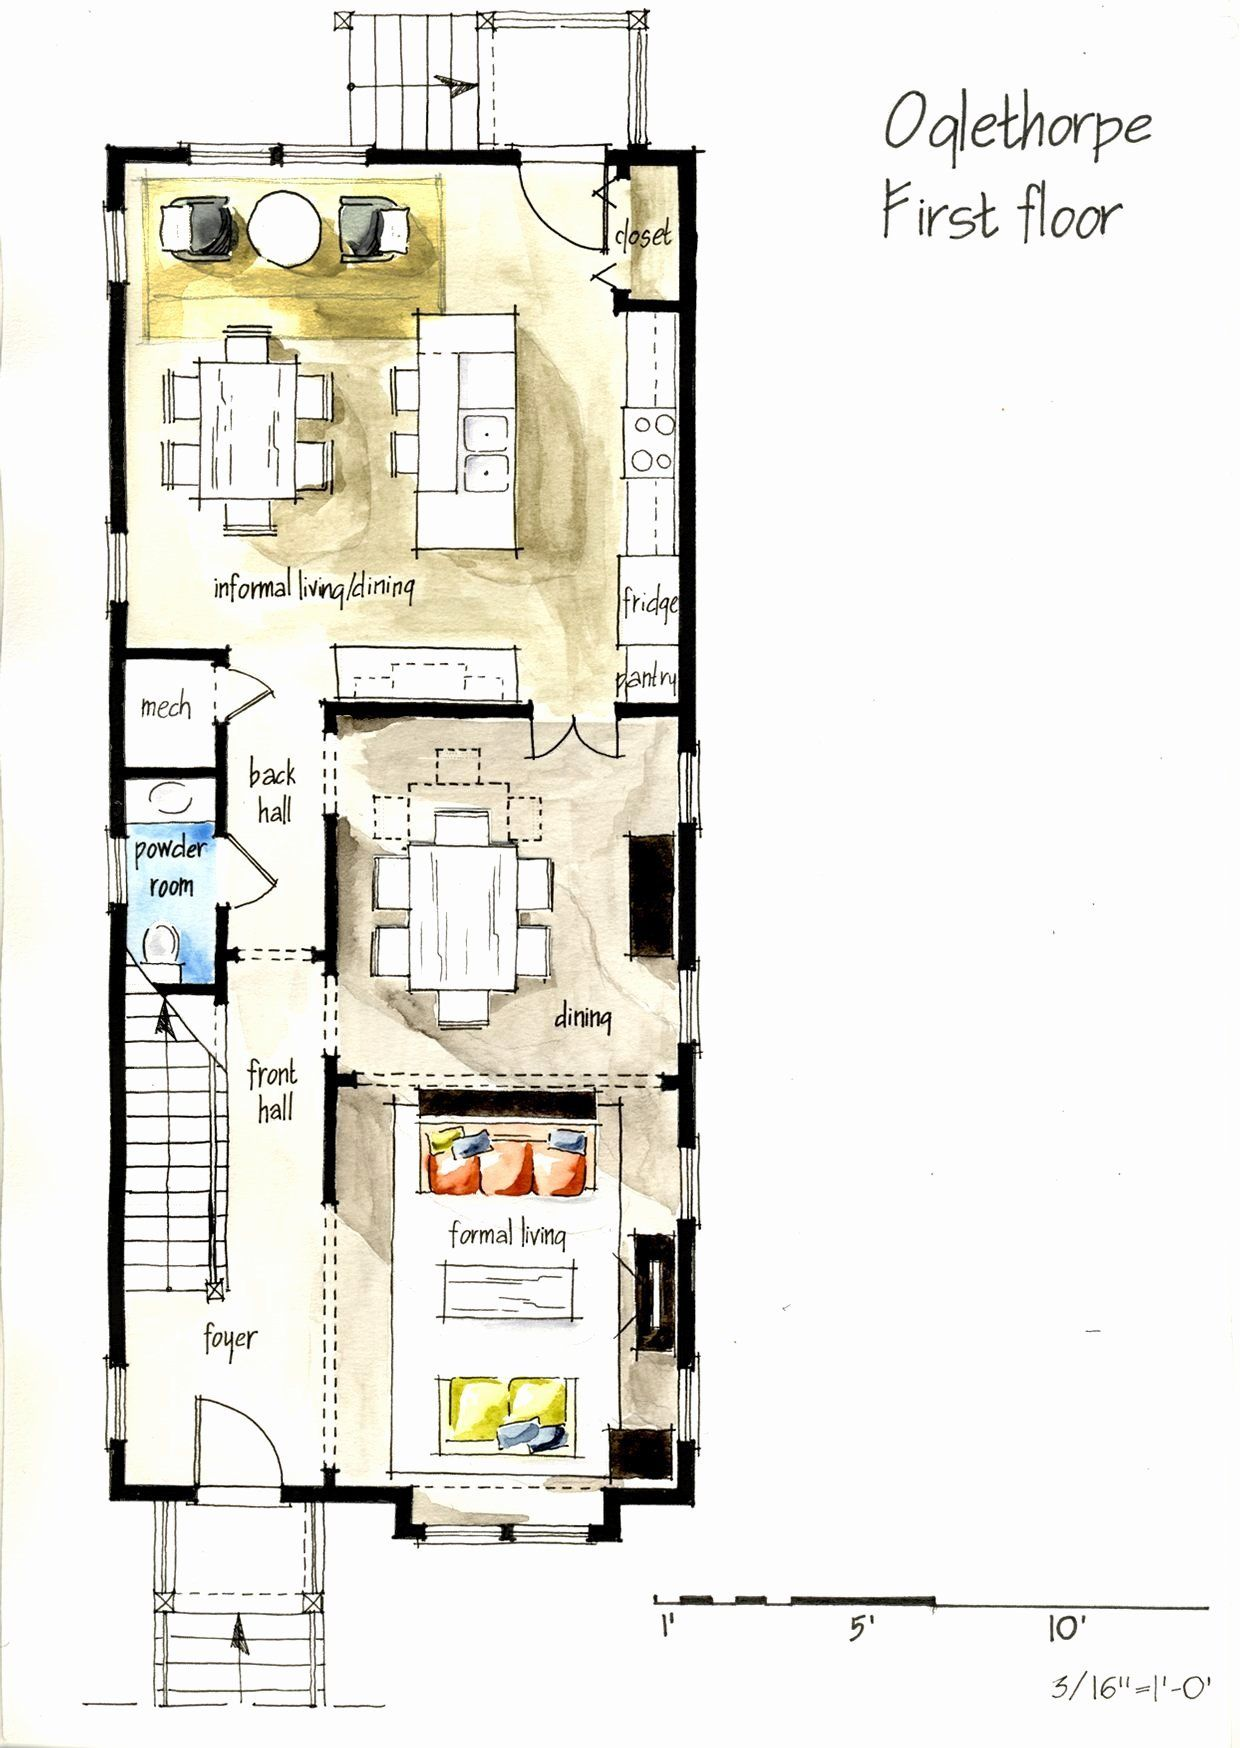 2d Home Design Plan Drawing Fresh Hand Drawing Plans In 2020 Floor Plan Design Floor Plan Sketch House Floor Plans